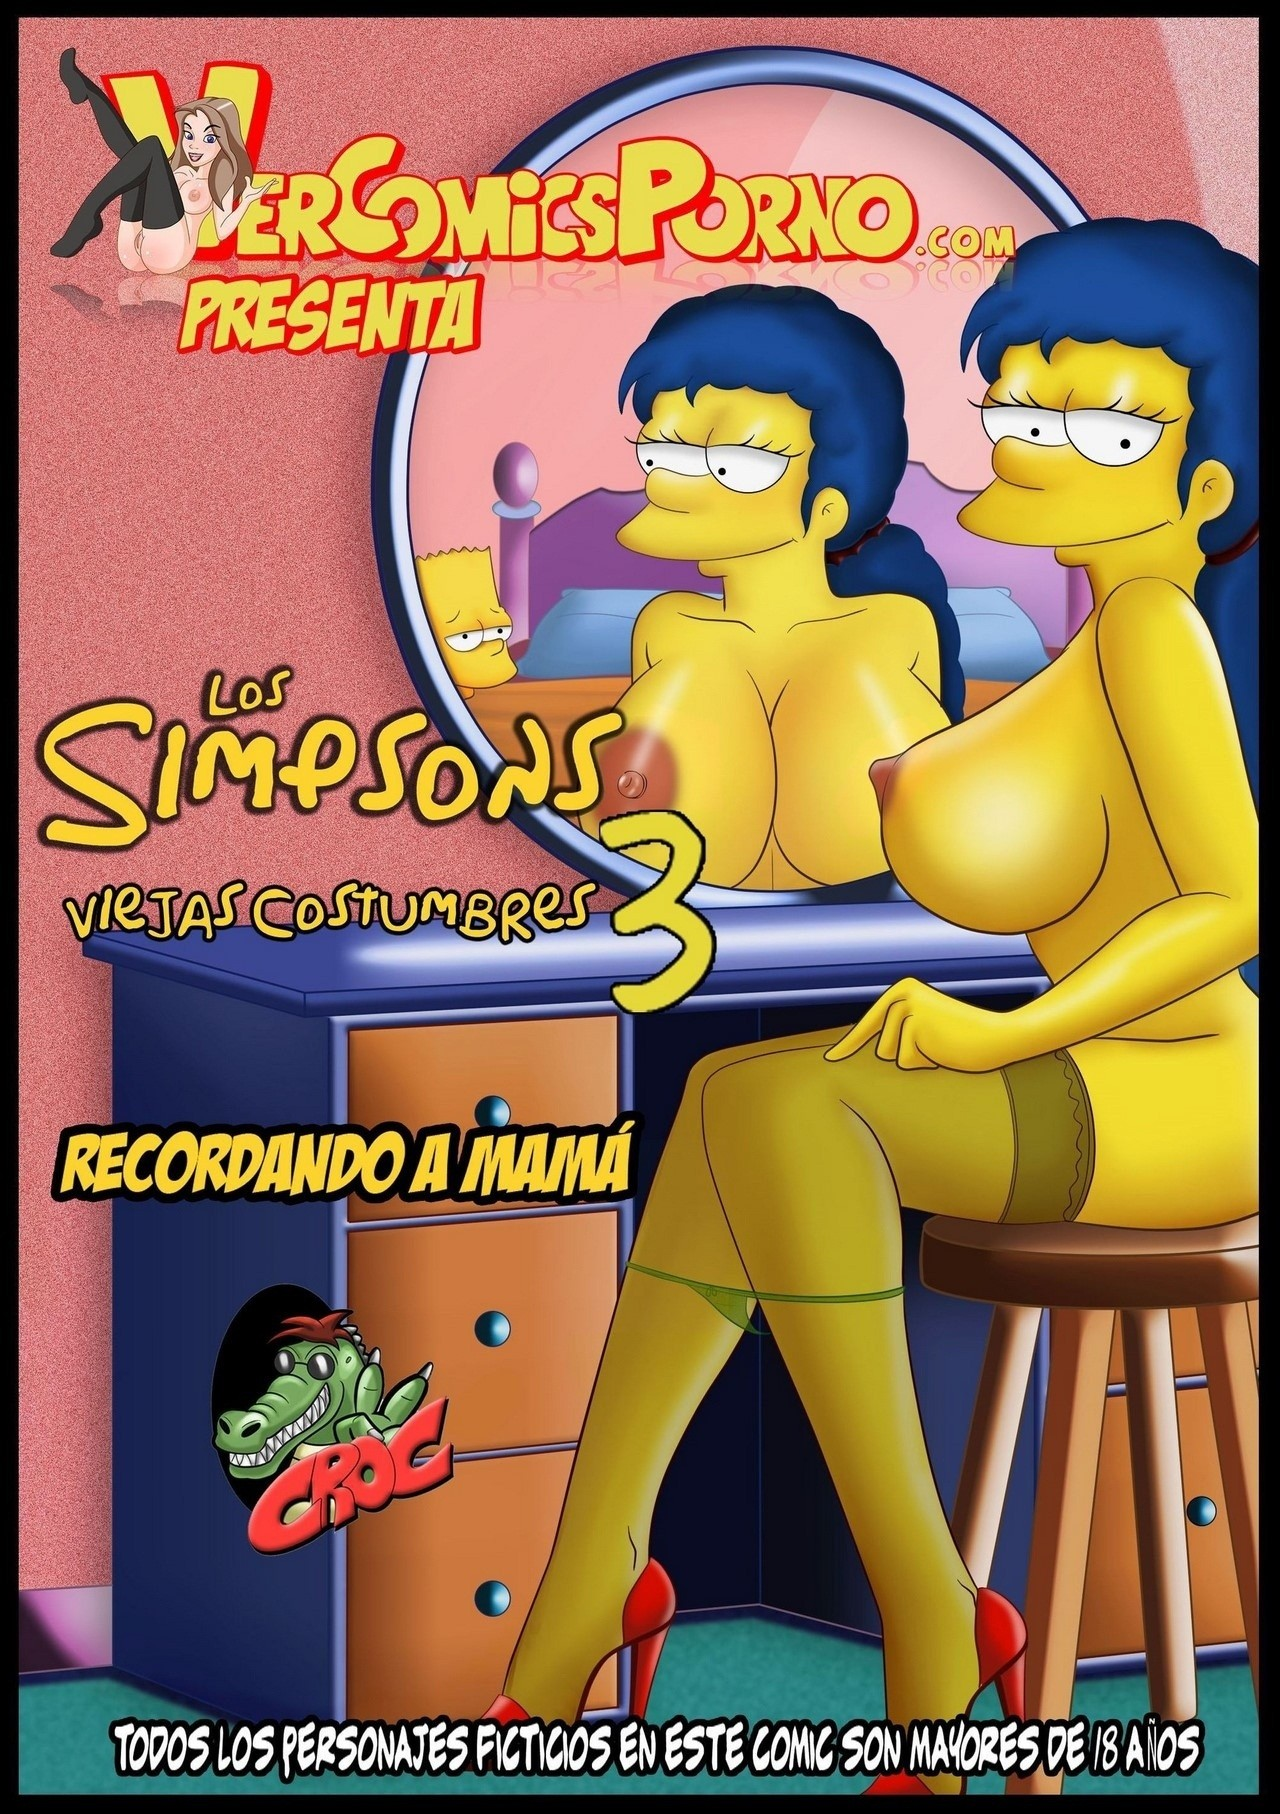 1 39 - The Simpsons. Part 3.